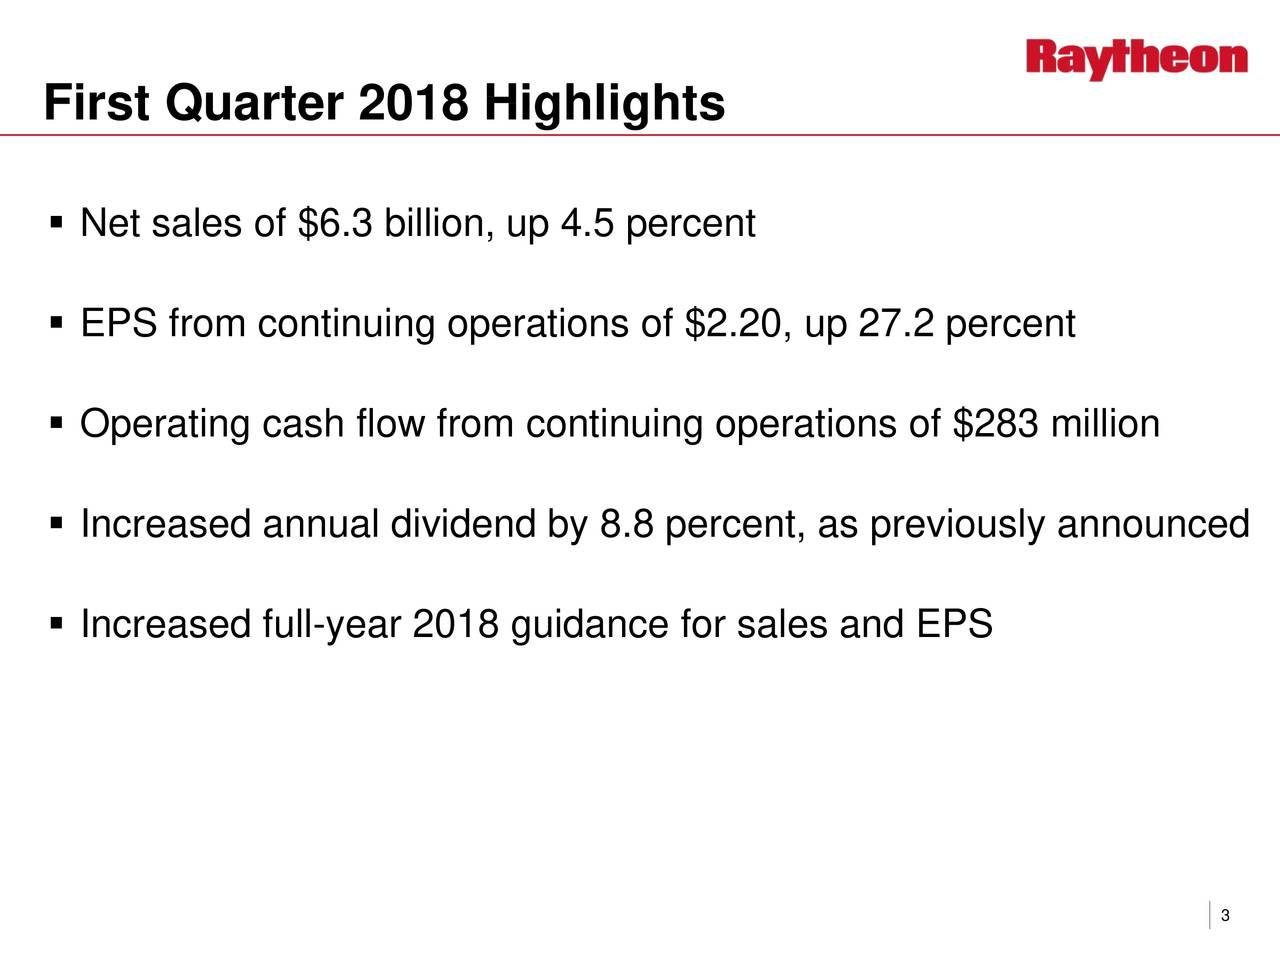  Net sales of $6.3 billion, up 4.5 percent  EPS from continuing operations of $2.20, up 27.2 percent  Operating cash flow from continuing operations of $283 million  Increased annual dividend by 8.8 percent, as previously announced  Increased full-year 2018 guidance for sales and EPS 3